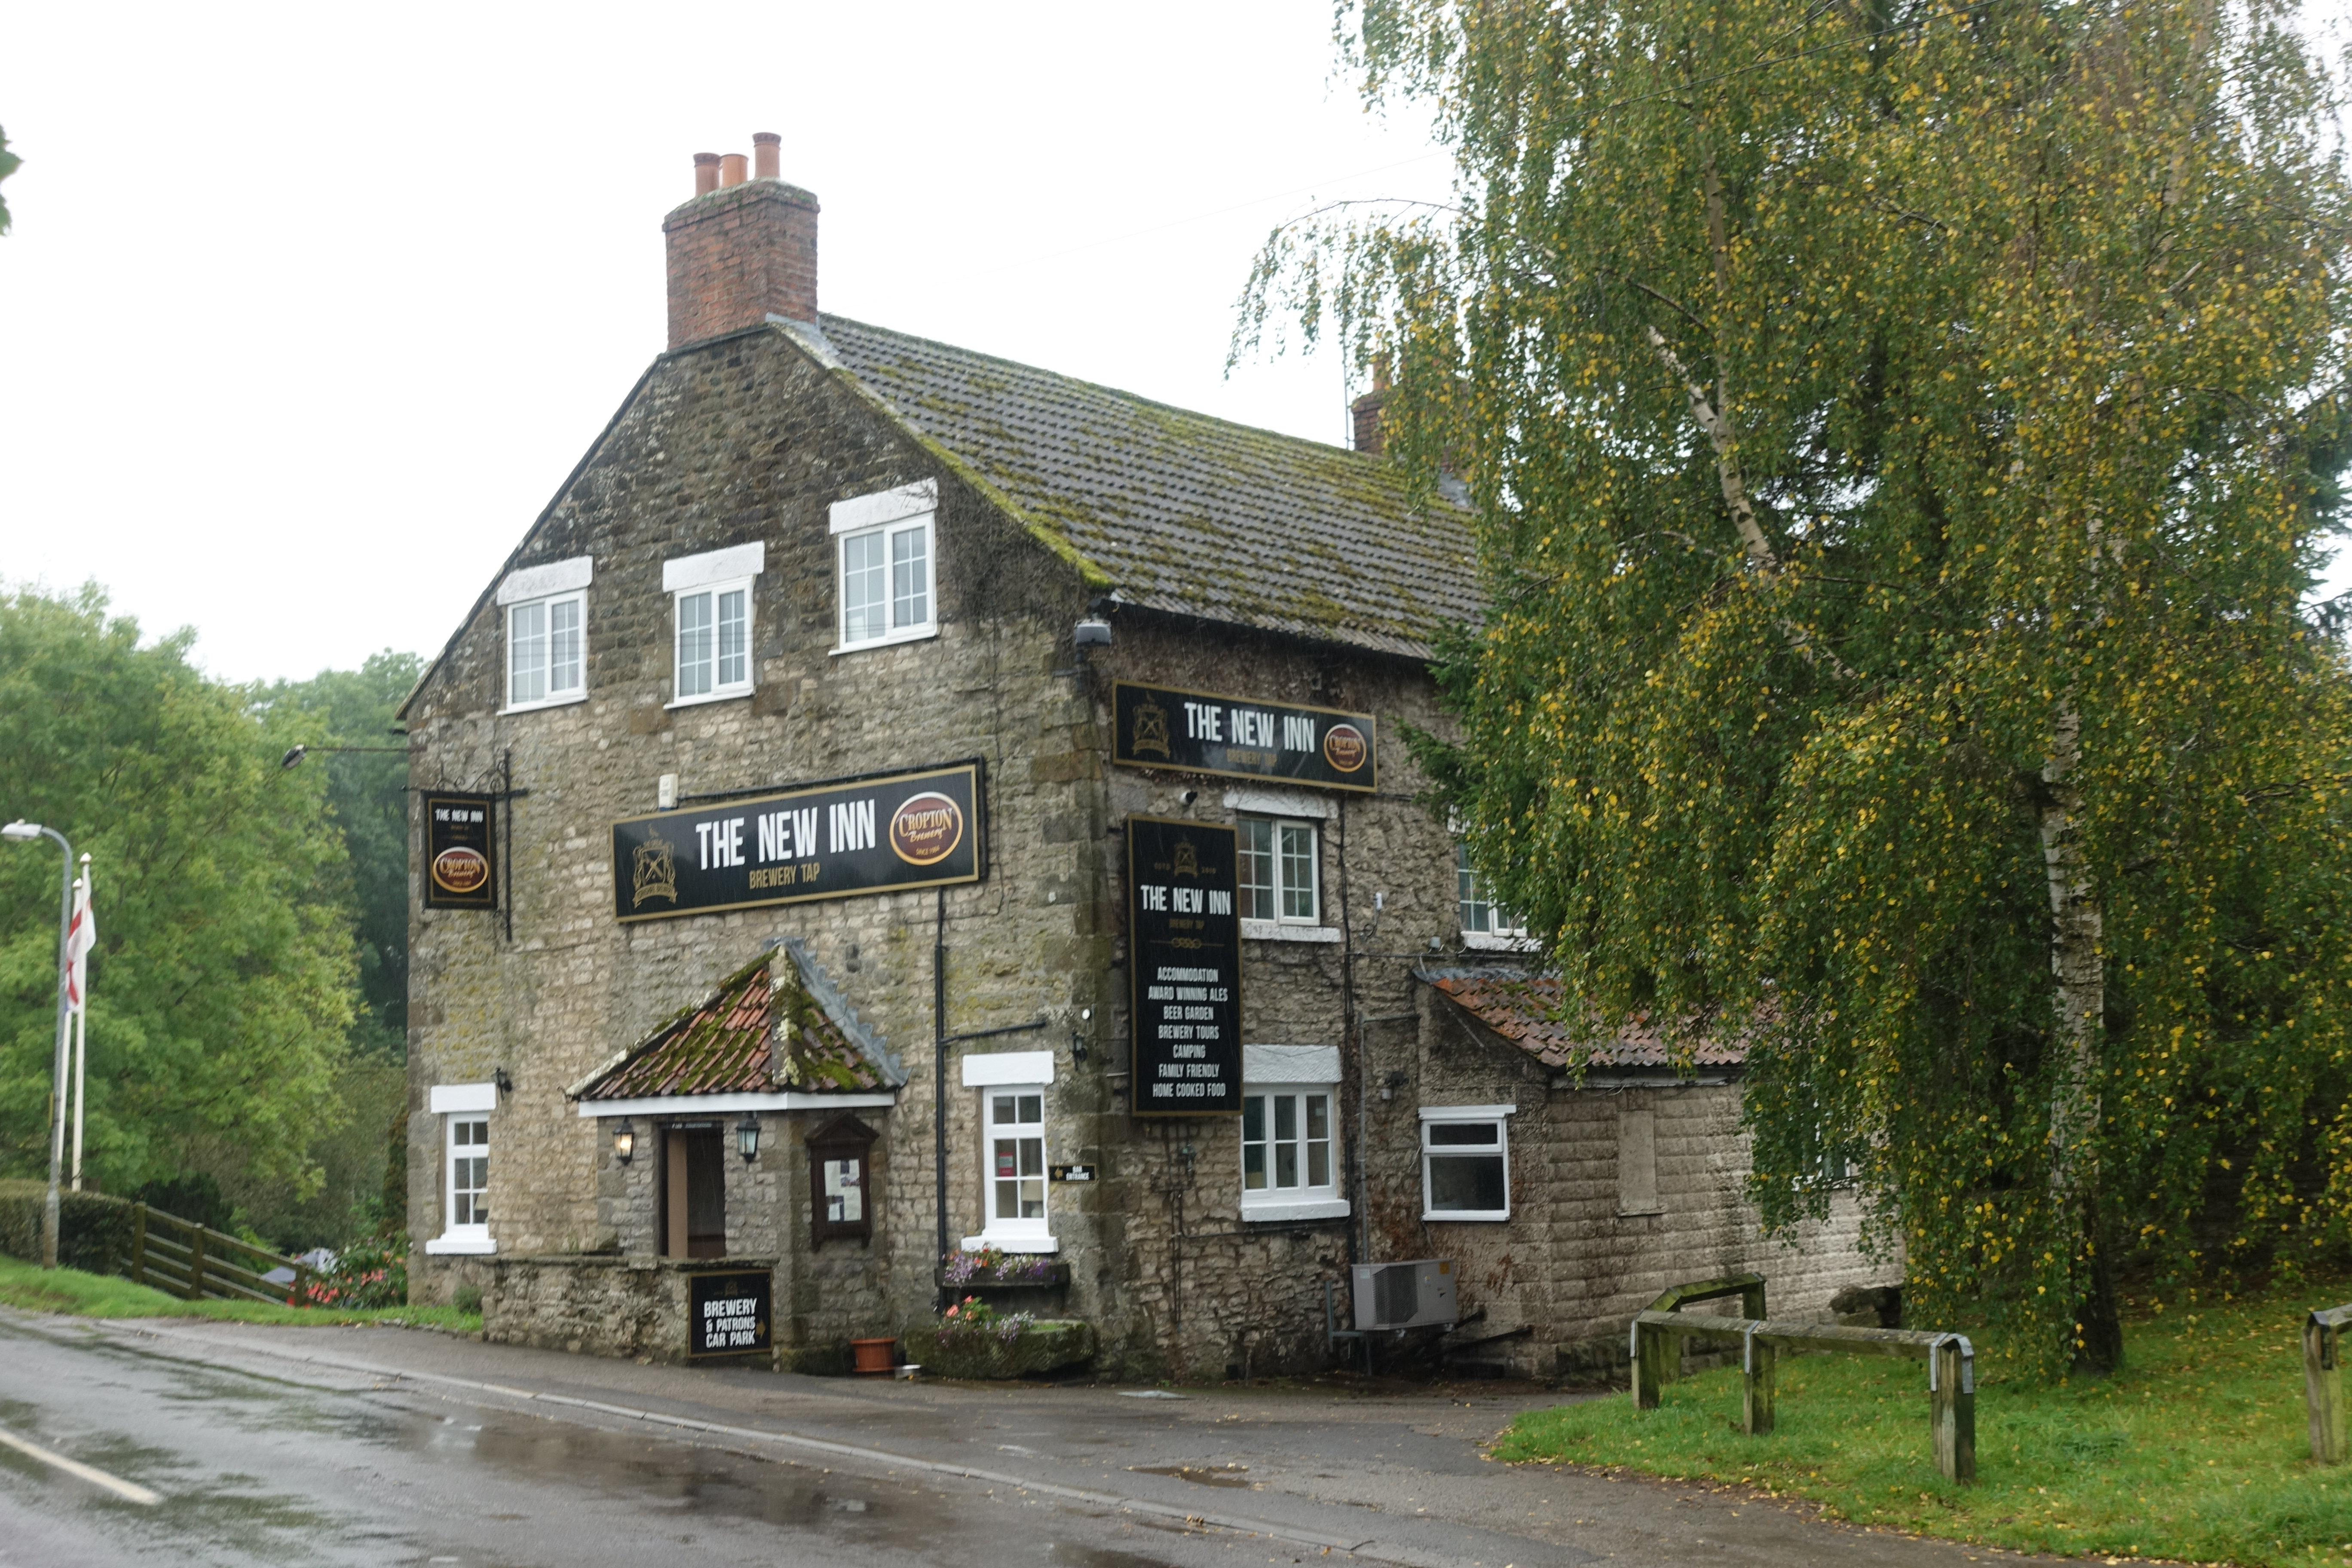 The New Inn at Cropton steadily filled with dog walkers and hikers. Excelent food and drink with welcoming staff, what more can you ask for